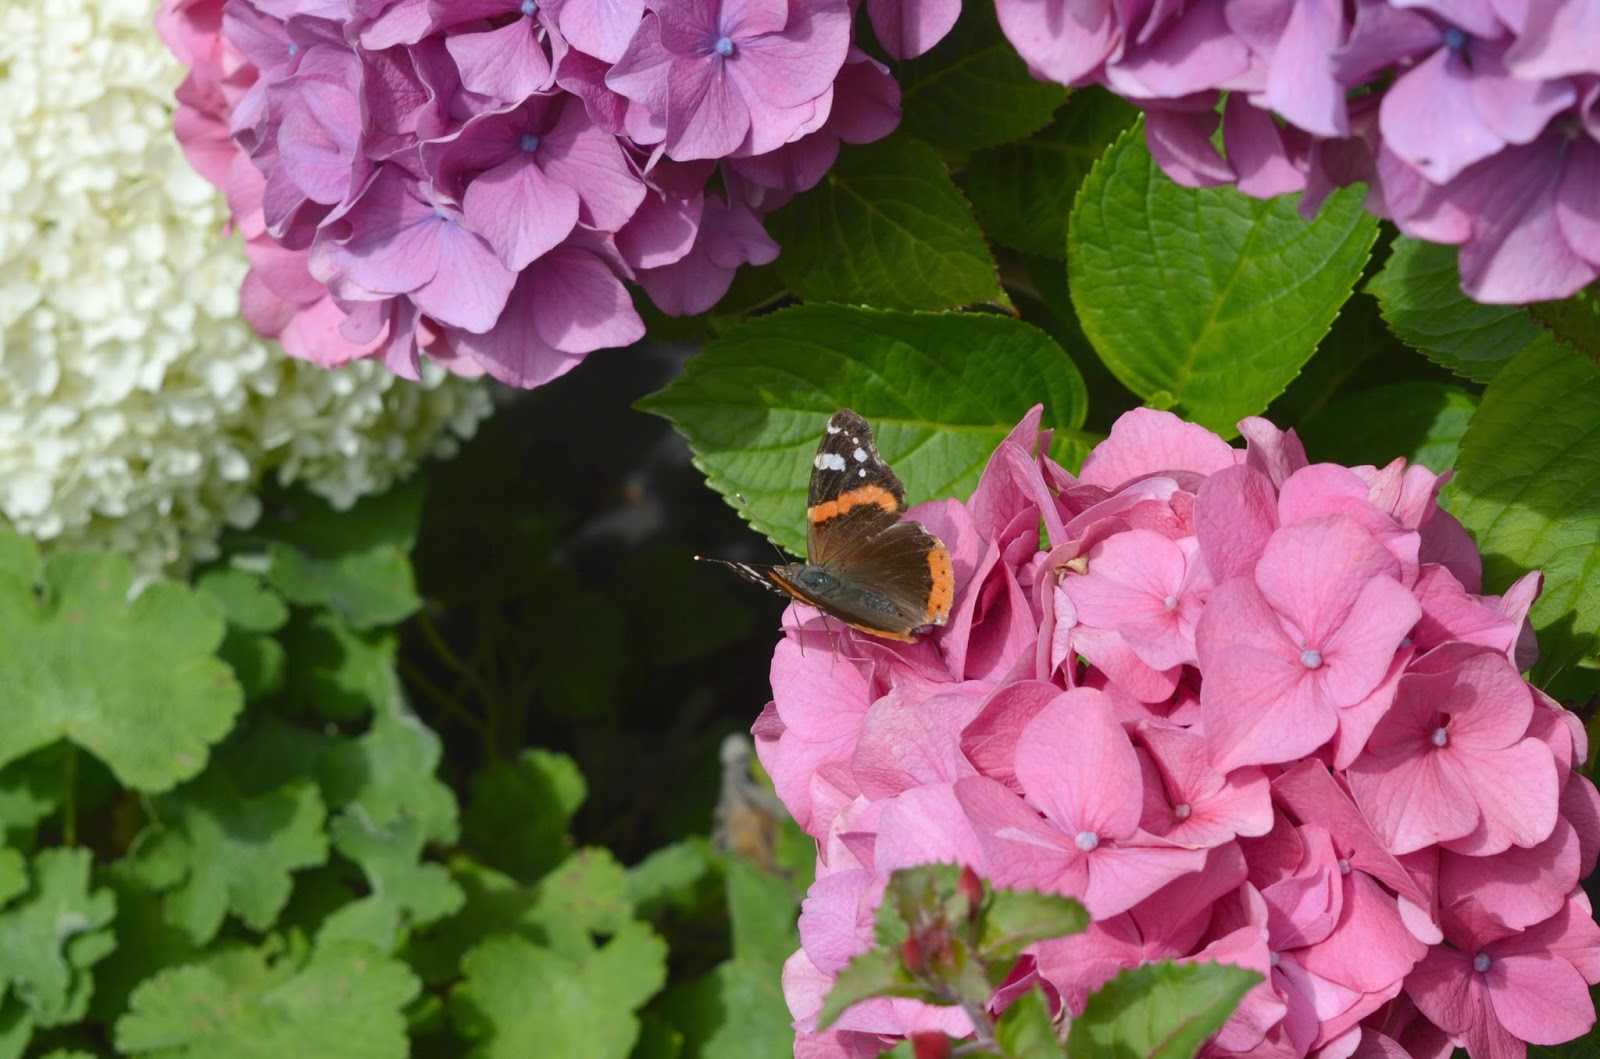 Gateshead's Great Outdoors - Birkheads Secret Gardens Bee and Butterfly Garden